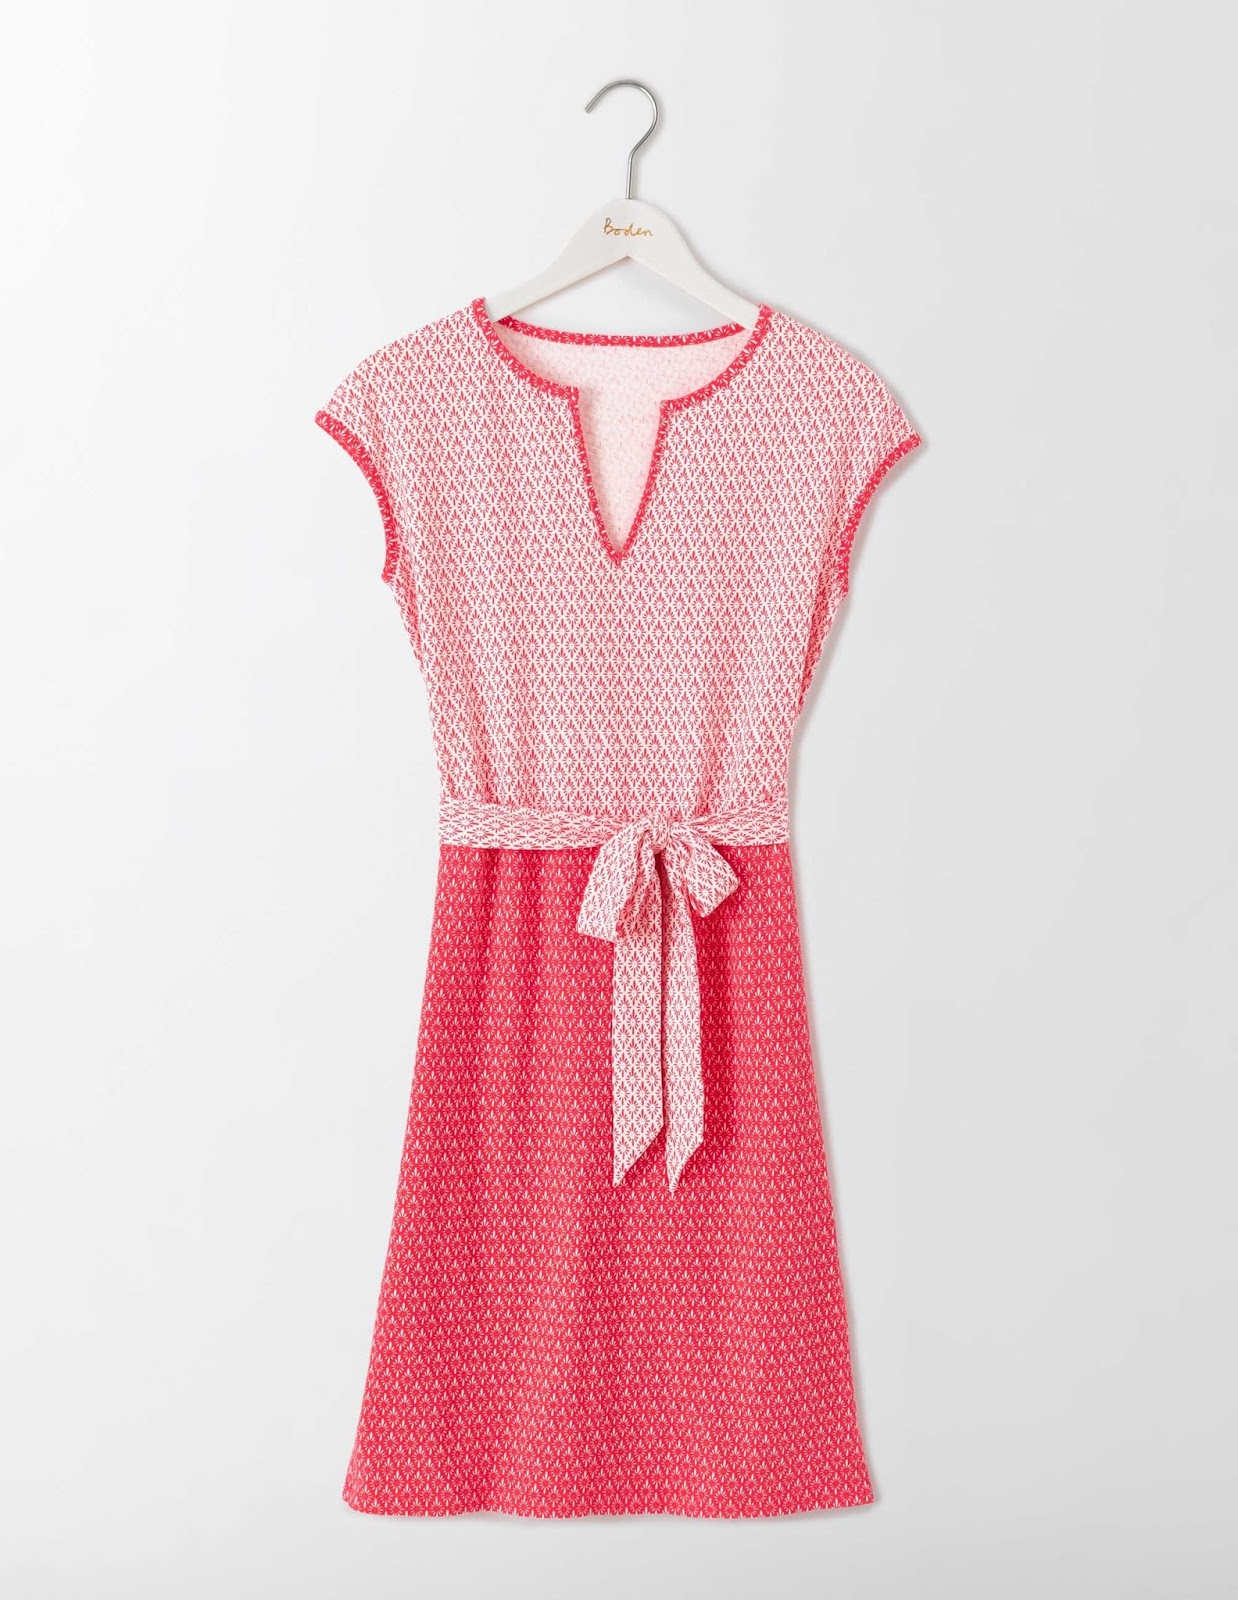 My superfluities boden summer 2017 preview picks for Boden preview uk